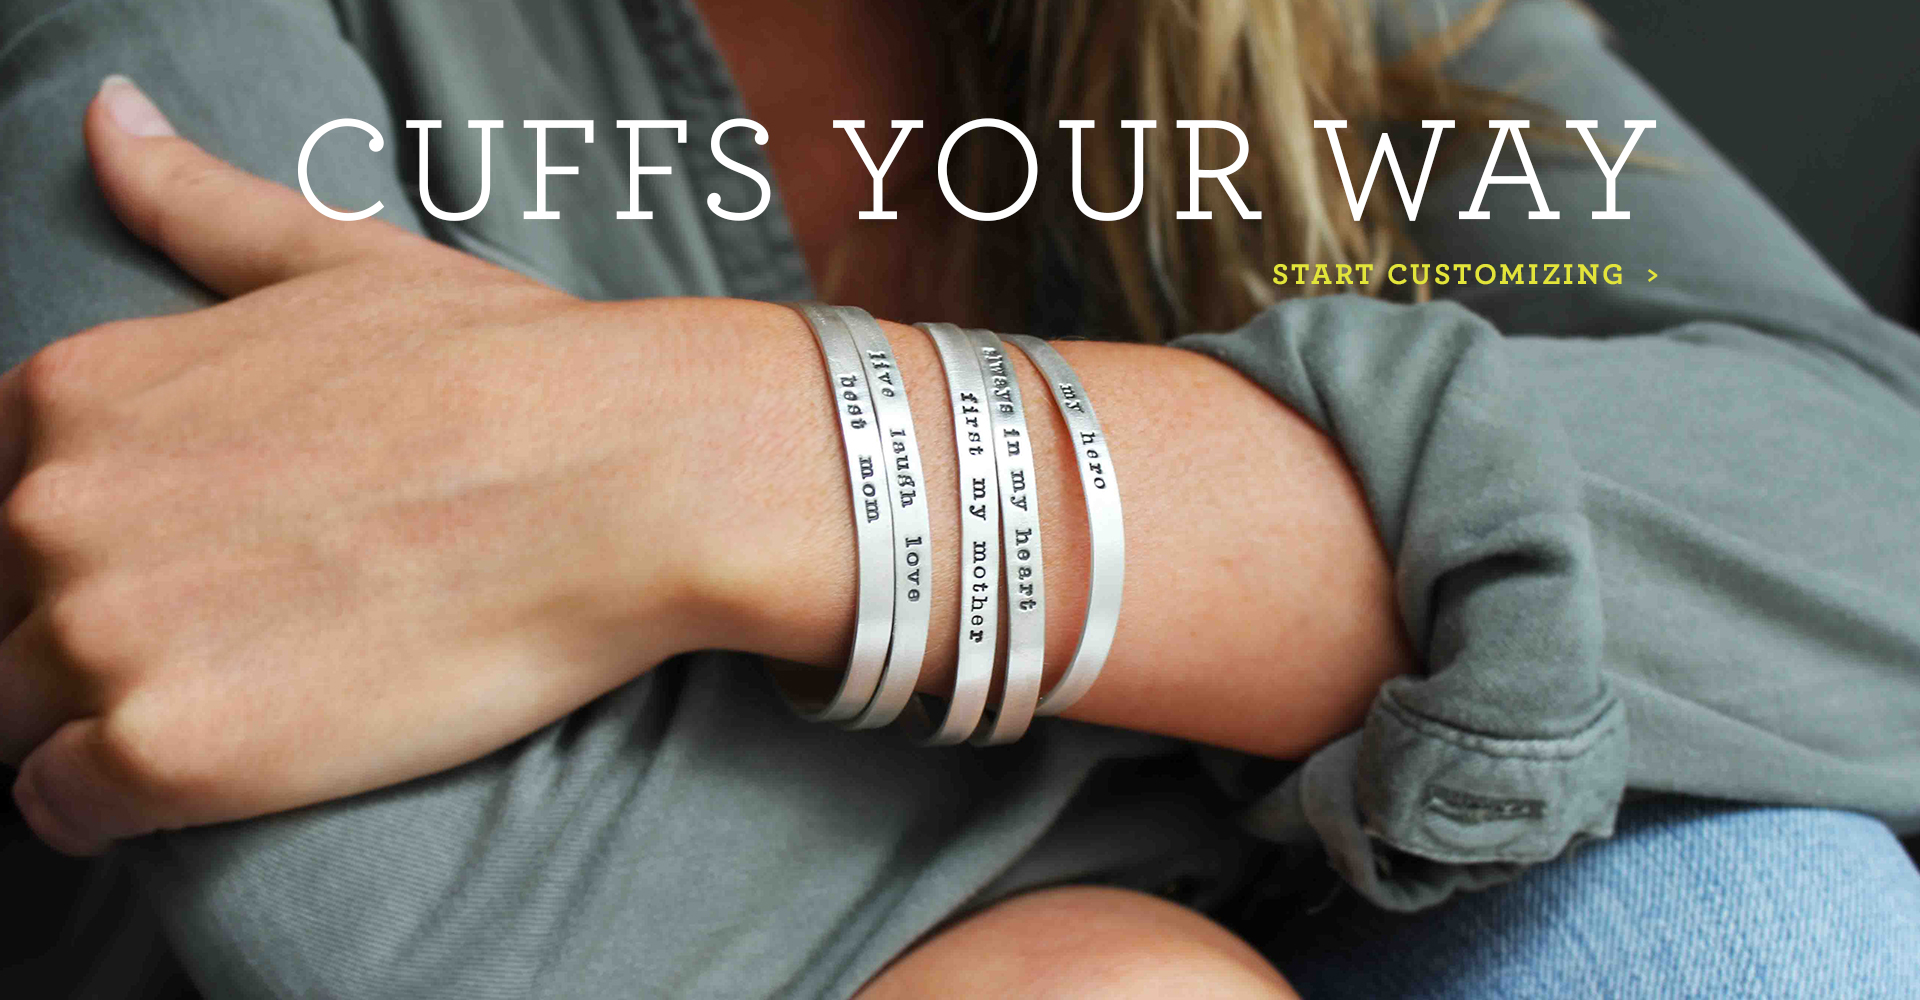 Cuffs Your Way